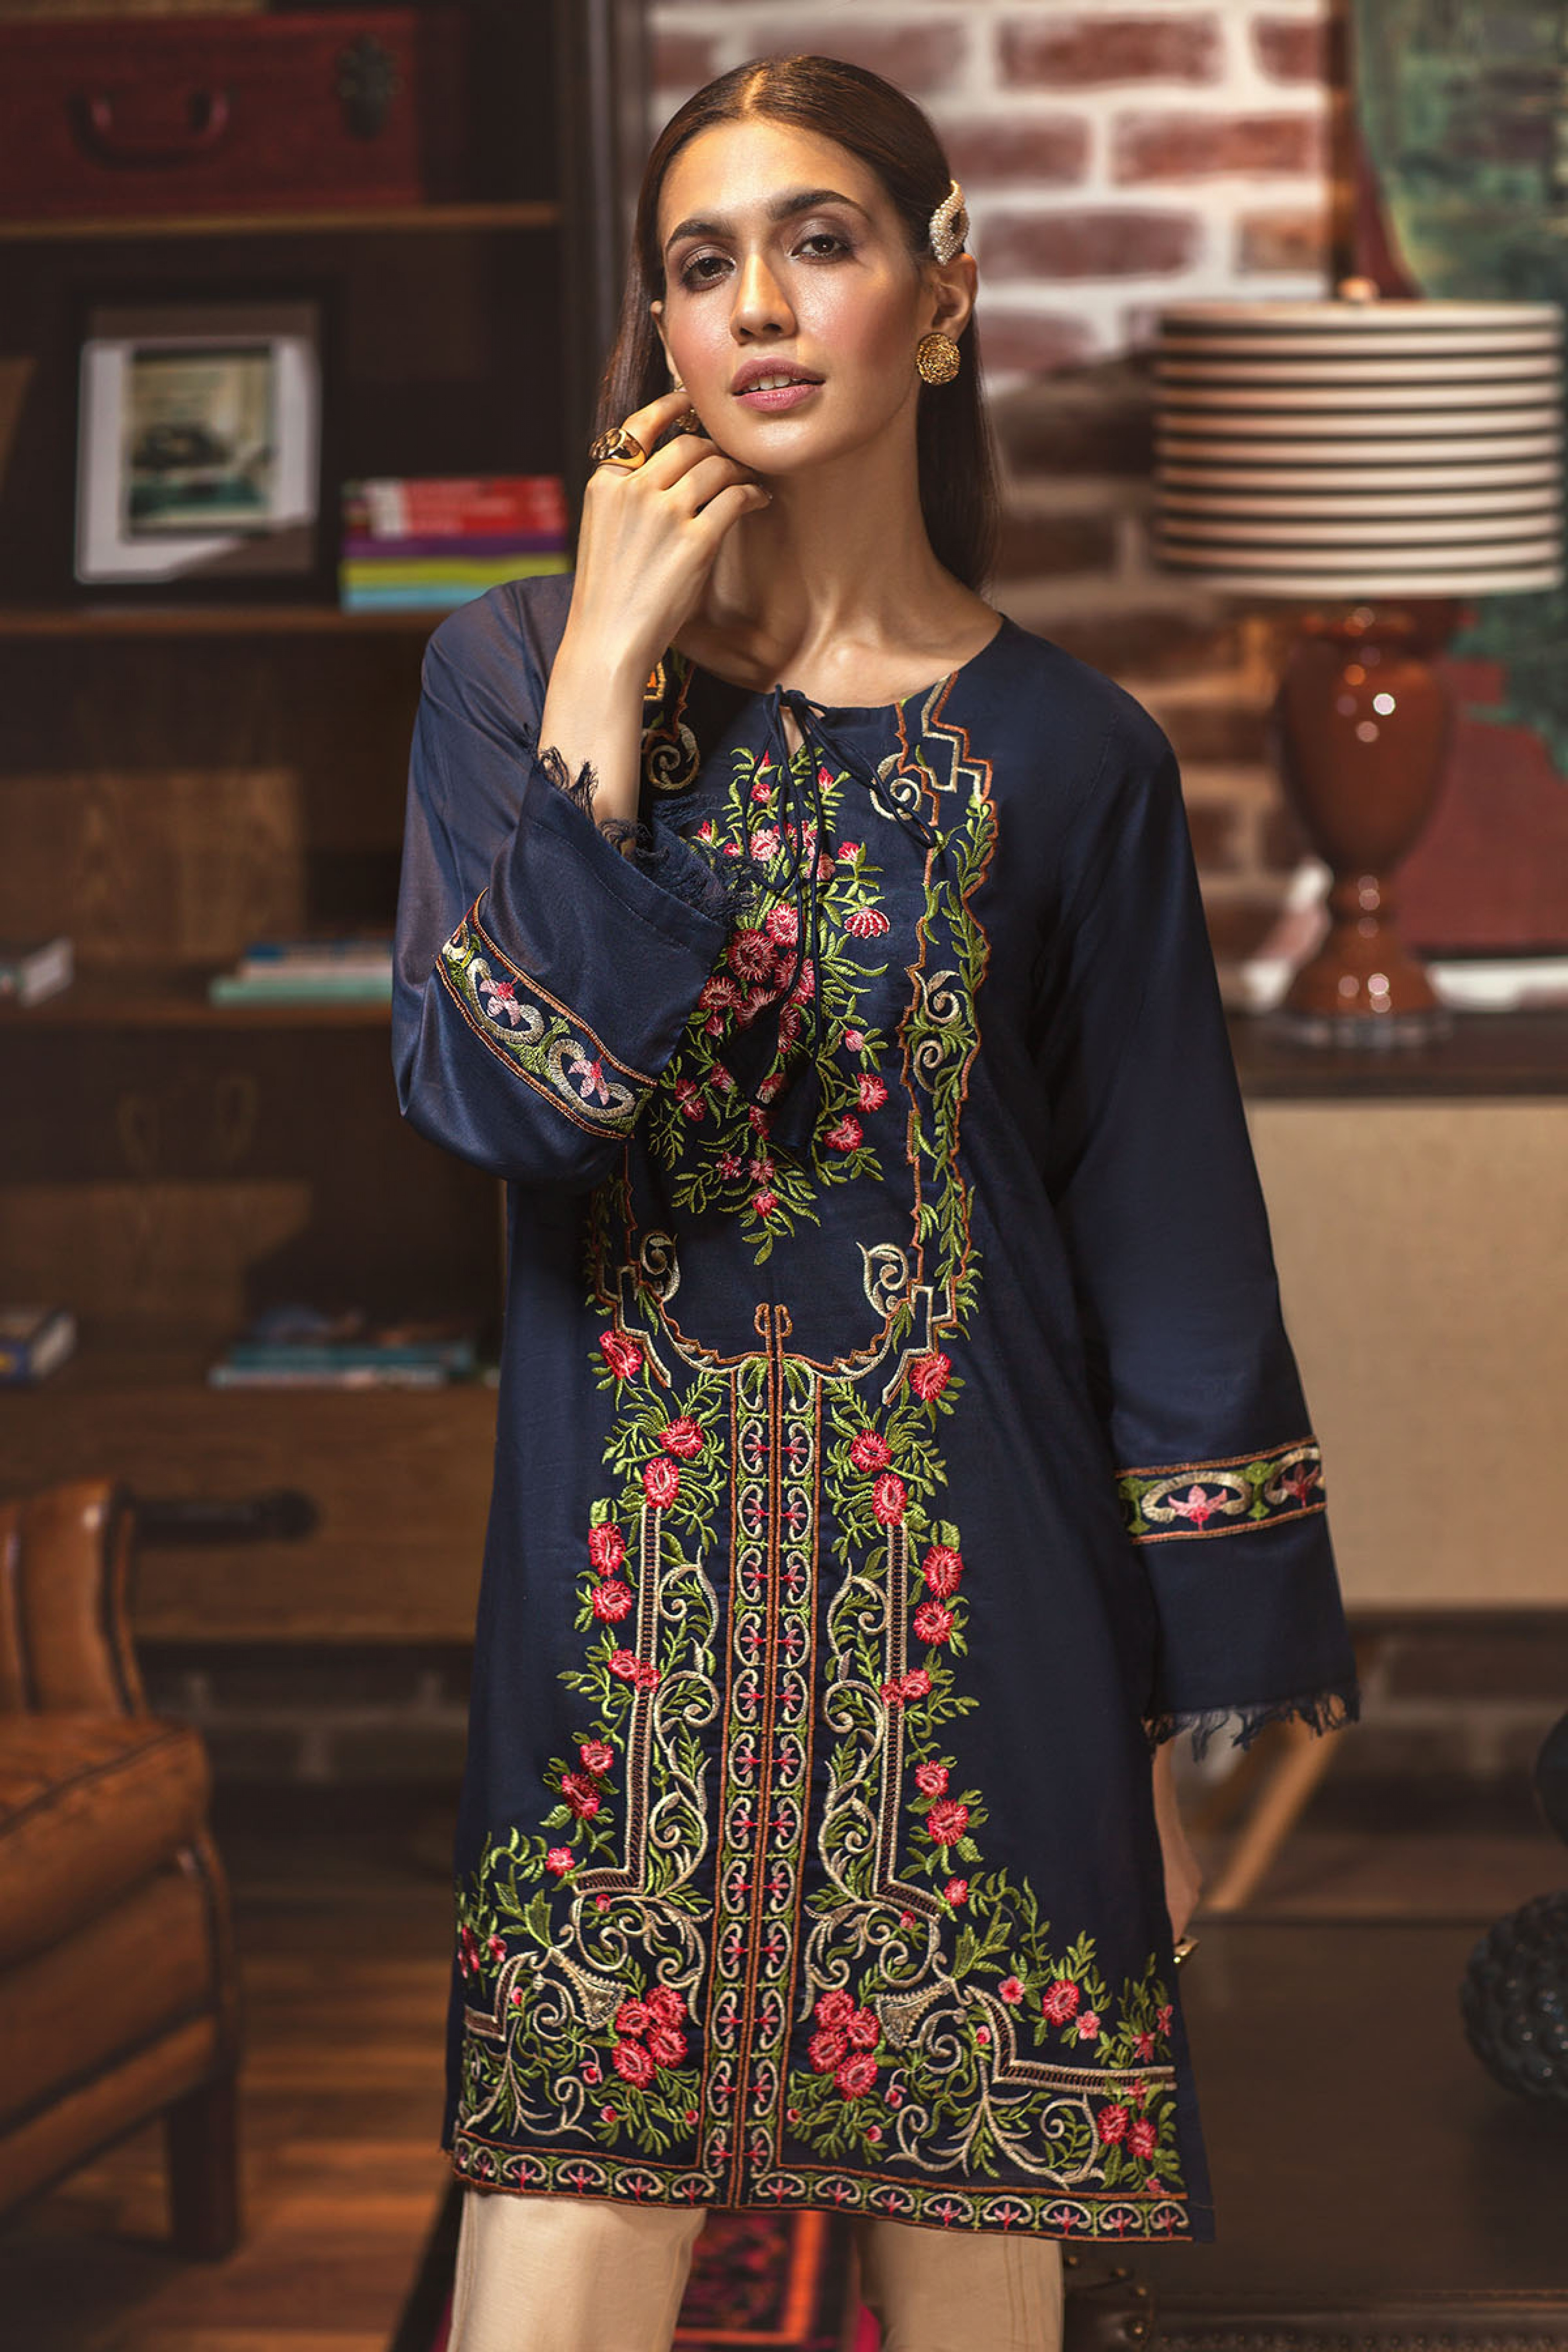 Floral Ethnic (Embroidered Shirt)